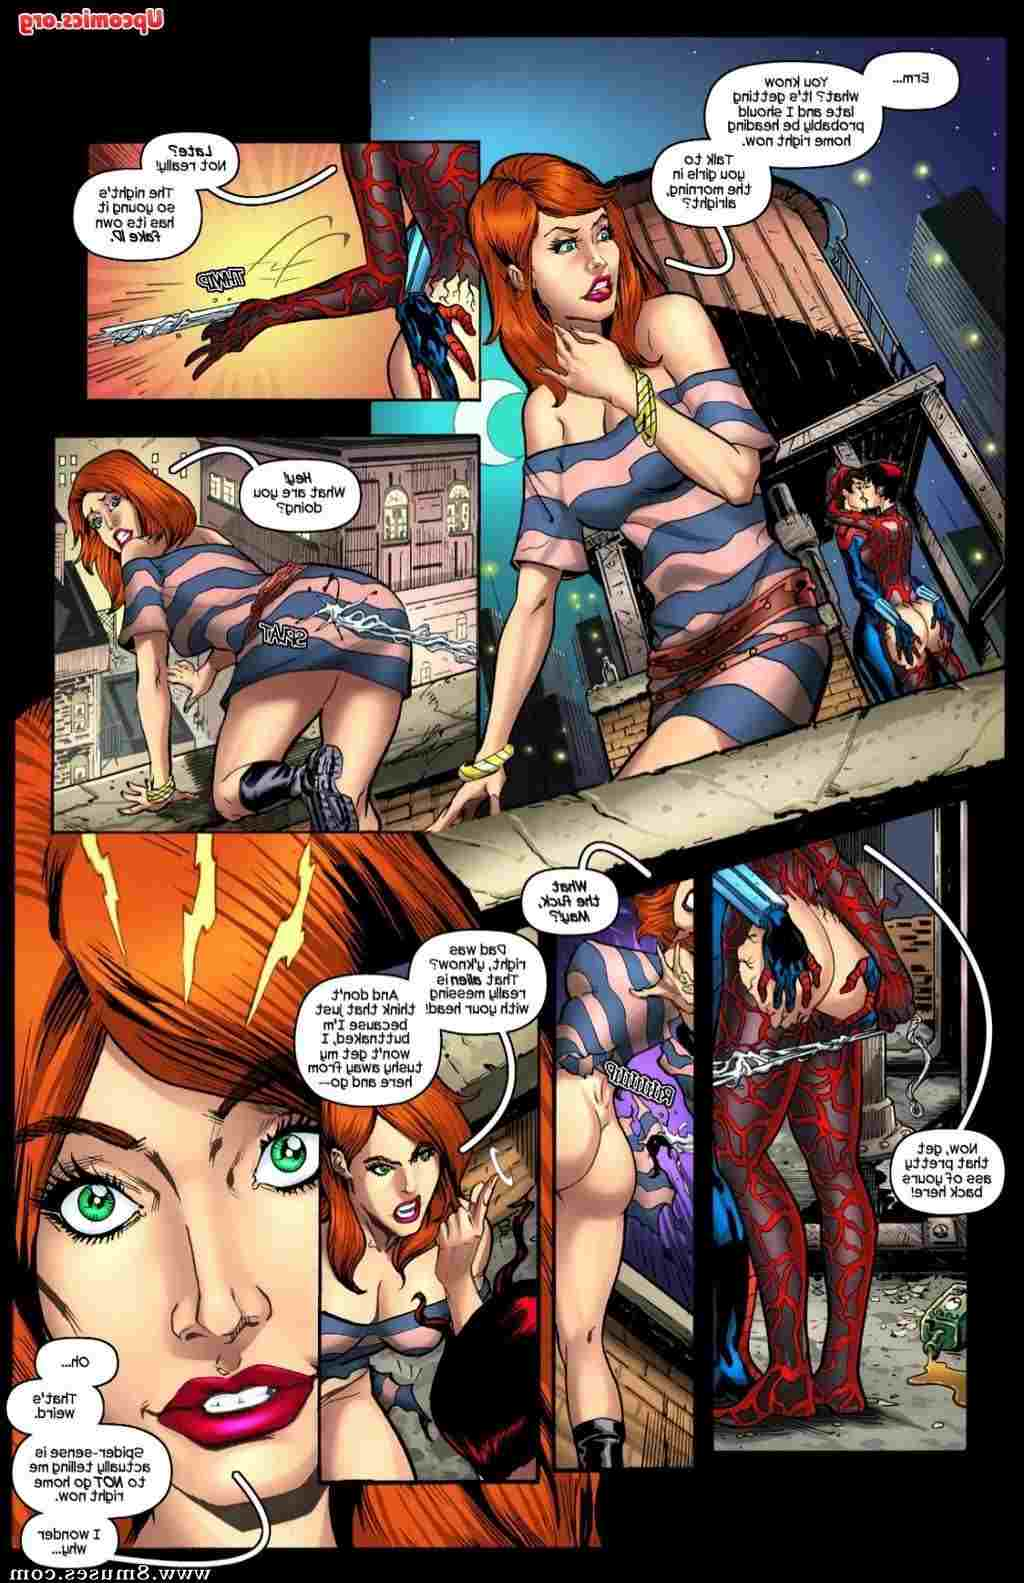 Tracy-Scops-Comics/Scions-The-Spidercest-Legacy Scions_-_The_Spidercest_Legacy__8muses_-_Sex_and_Porn_Comics_7.jpg